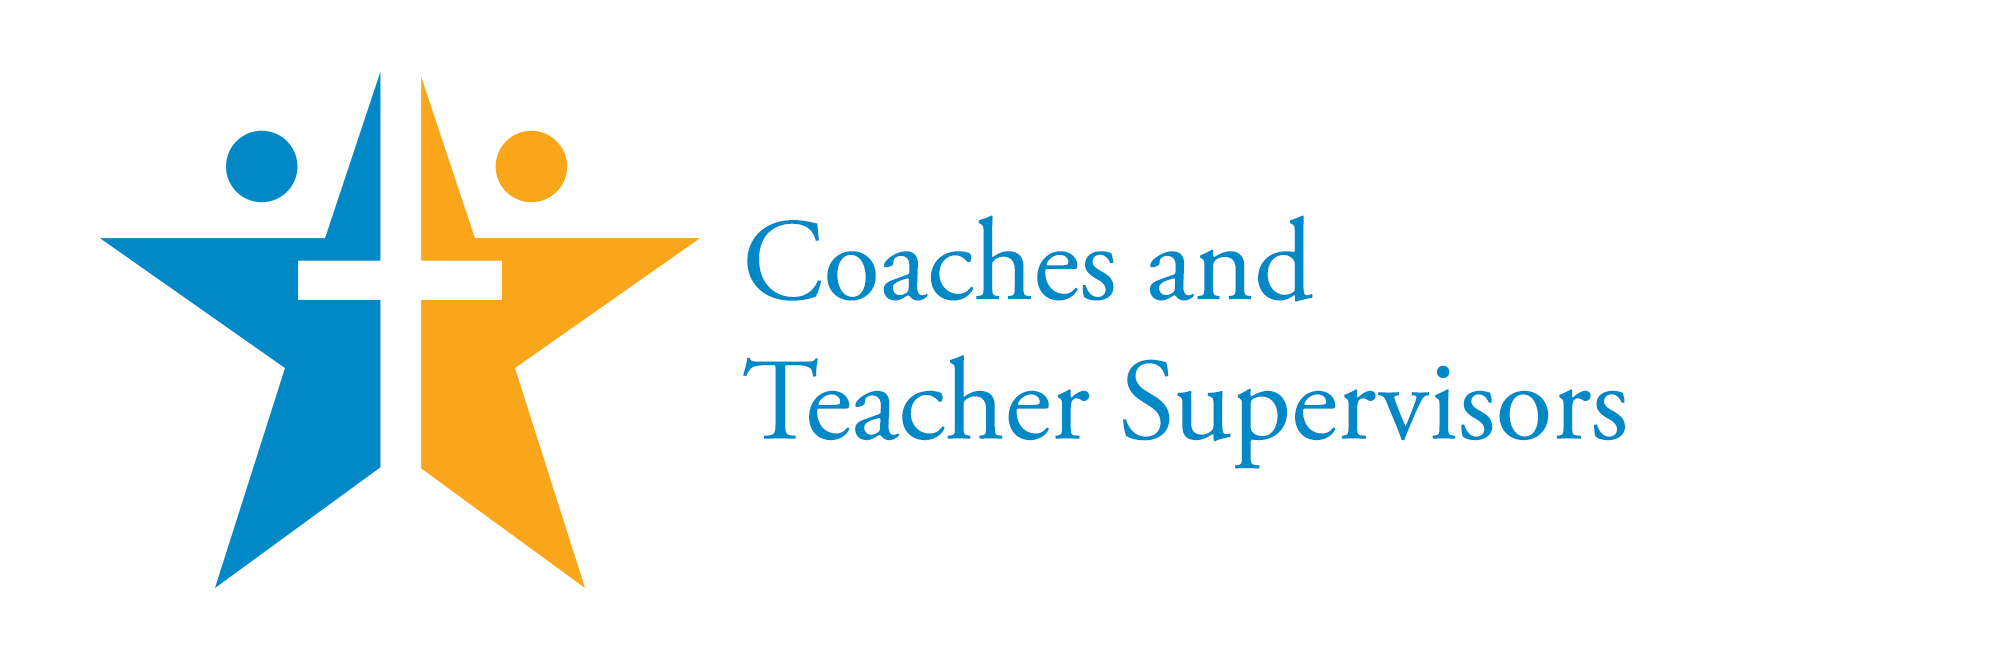 Coaches and Teacher Supervisors